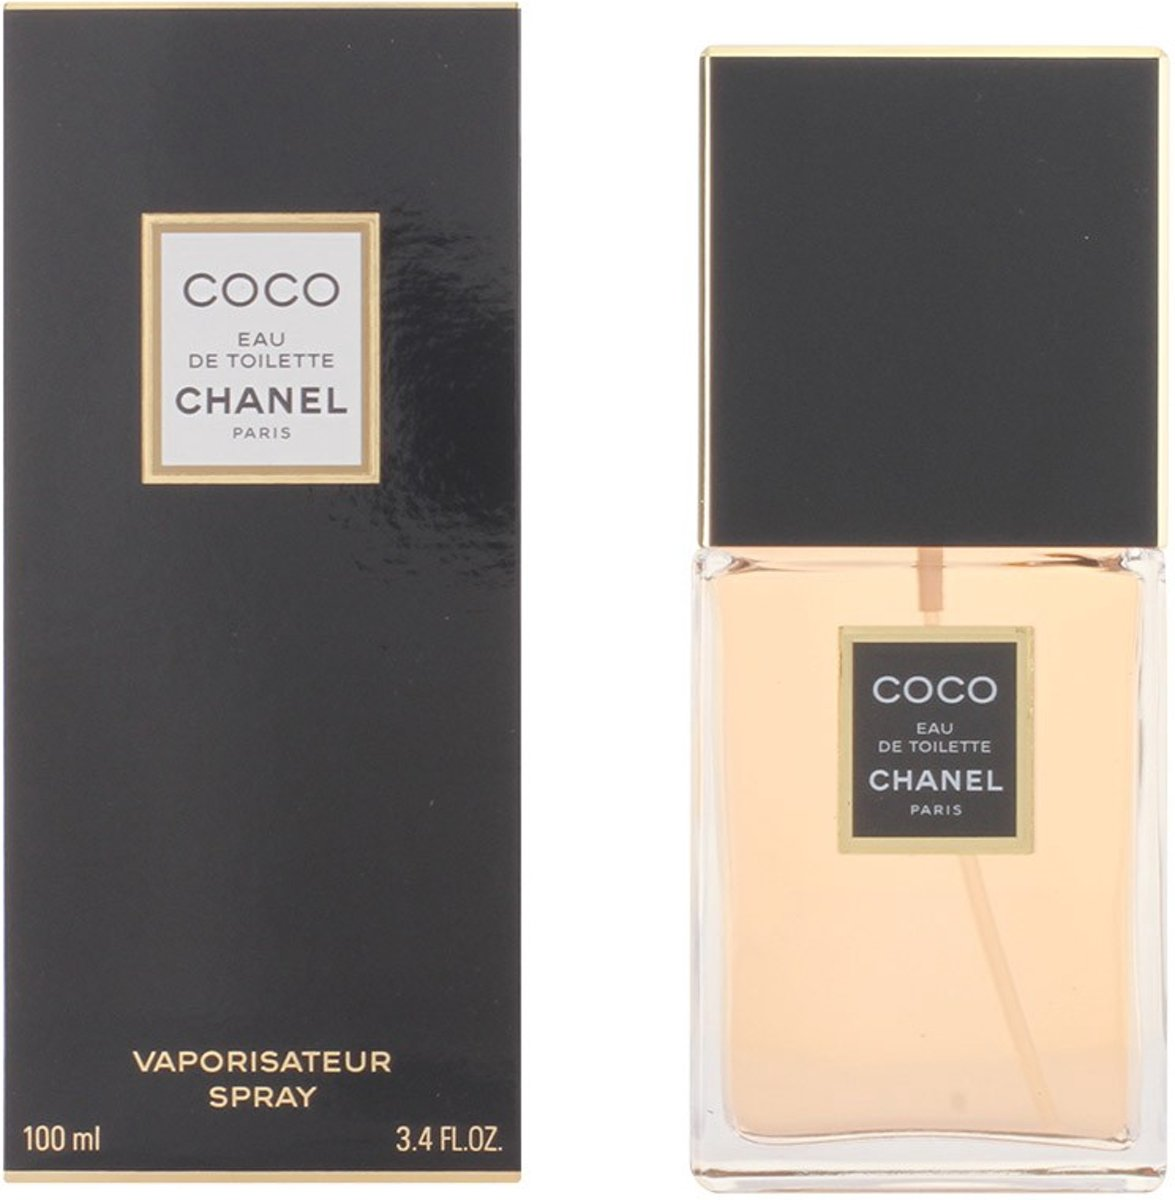 Chanel - COCO - eau de toilette - spray 100 ml